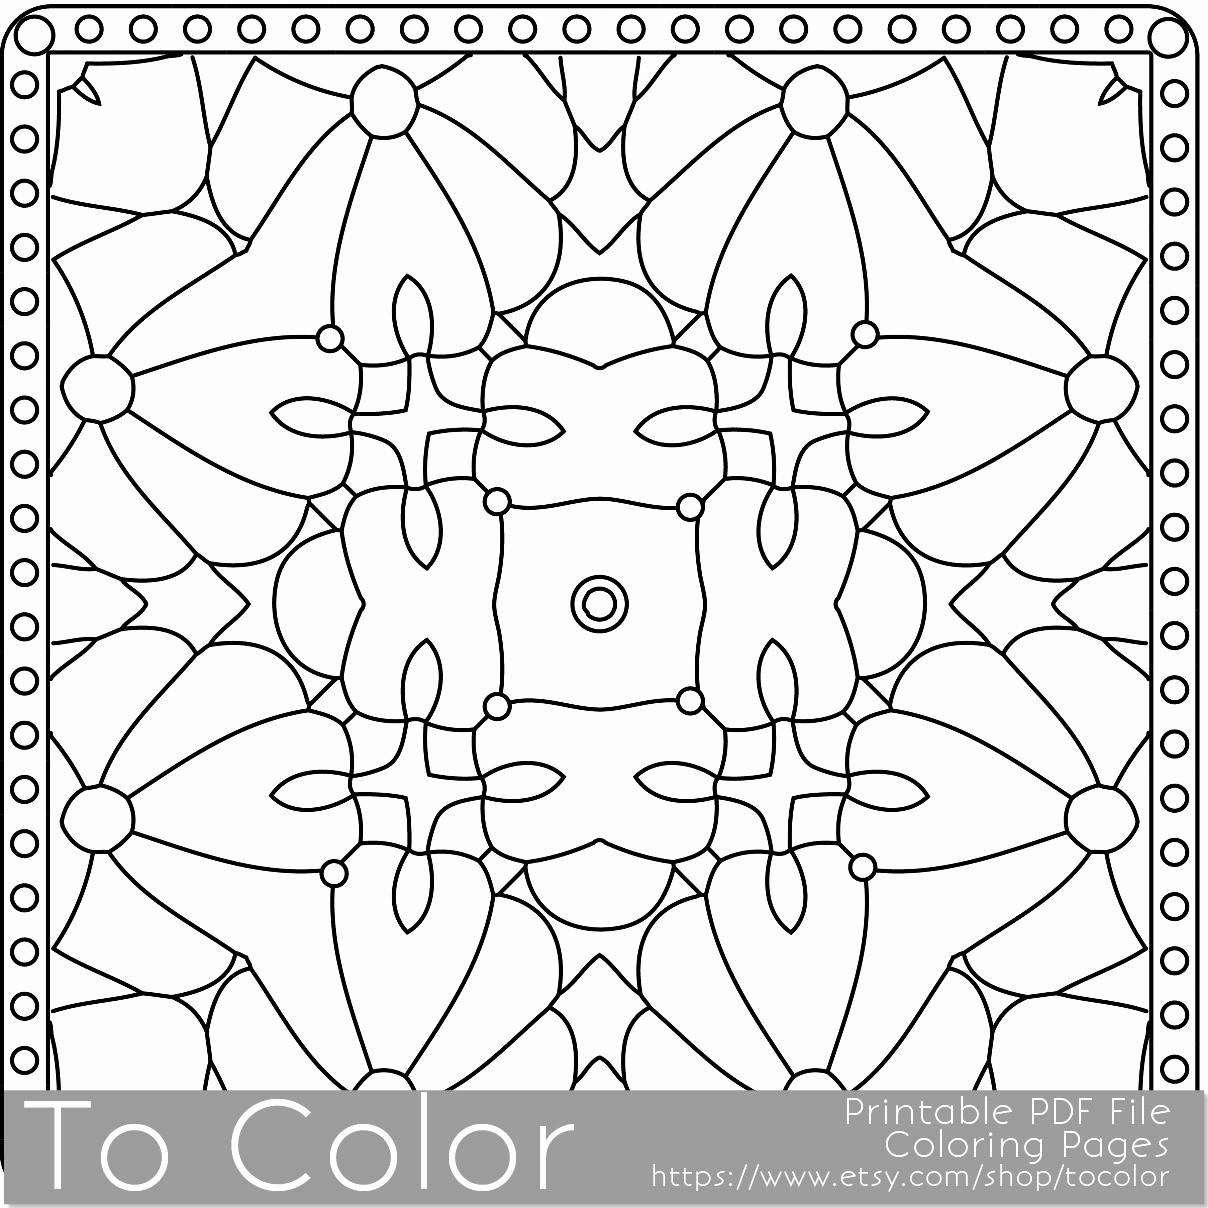 picture of a flower vase to color of free printable coloring pages of flower elegant cool vases flower for free printable coloring pages of flower elegant cool vases flower vase coloring pag